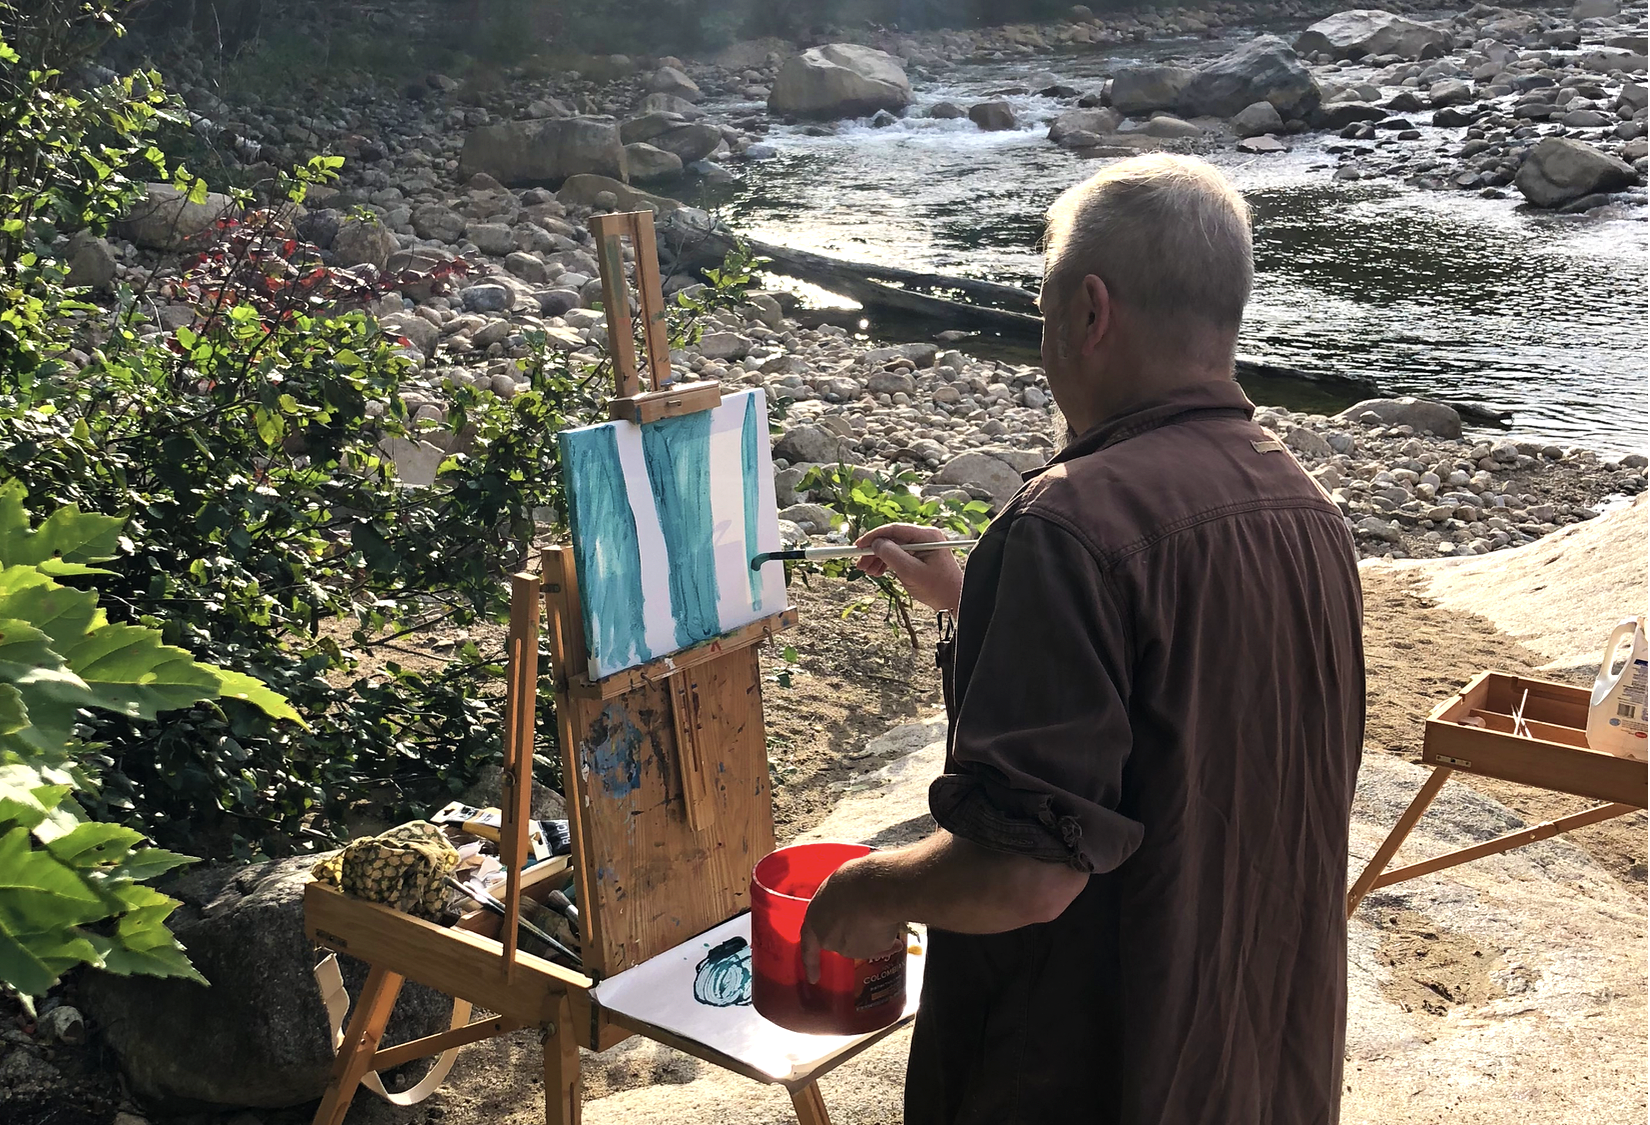 Bill painting near water